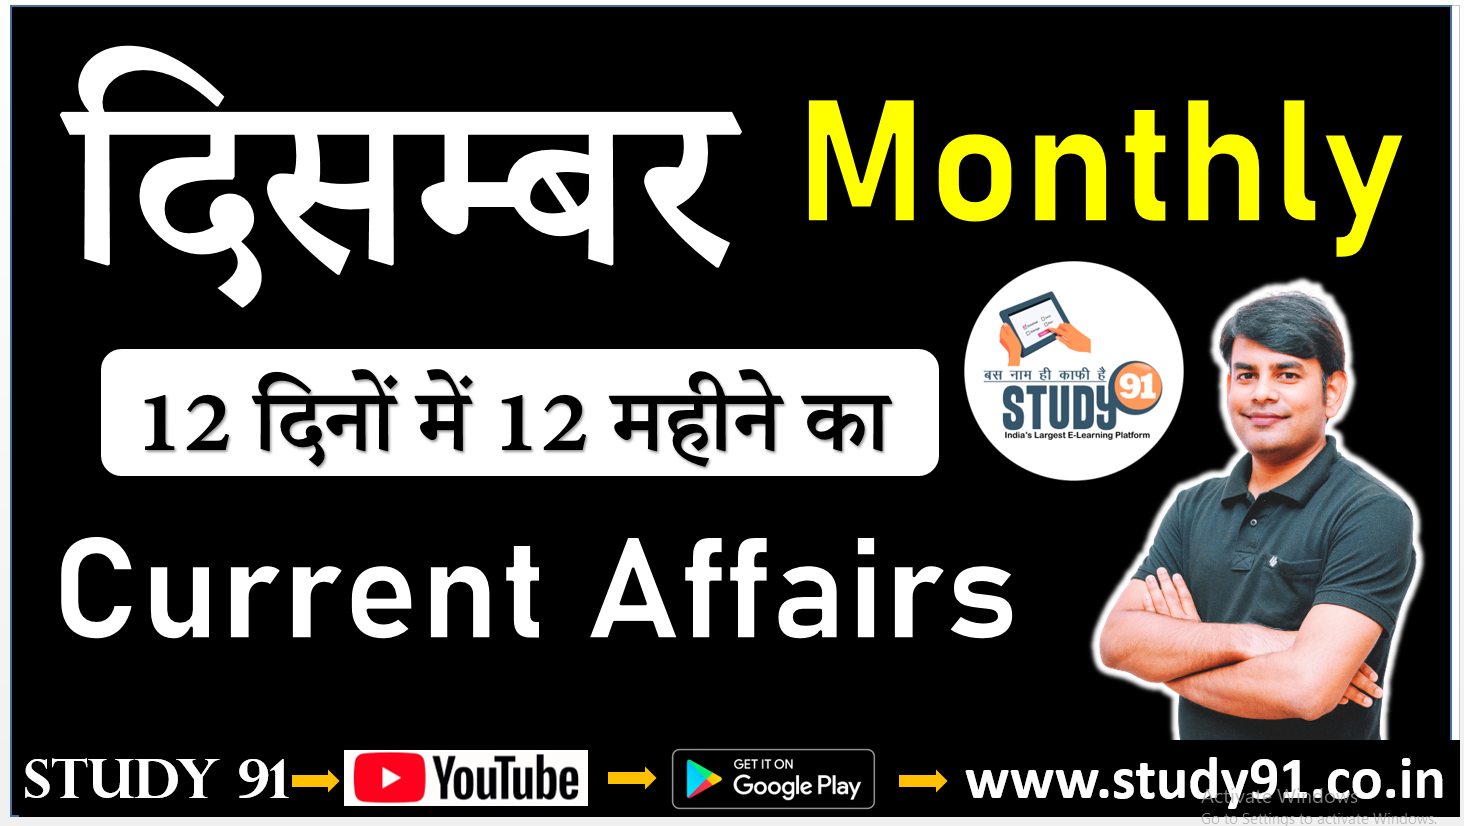 Monthly Current Affairs December 2020 in Hindi with PDF, Test and Video Class